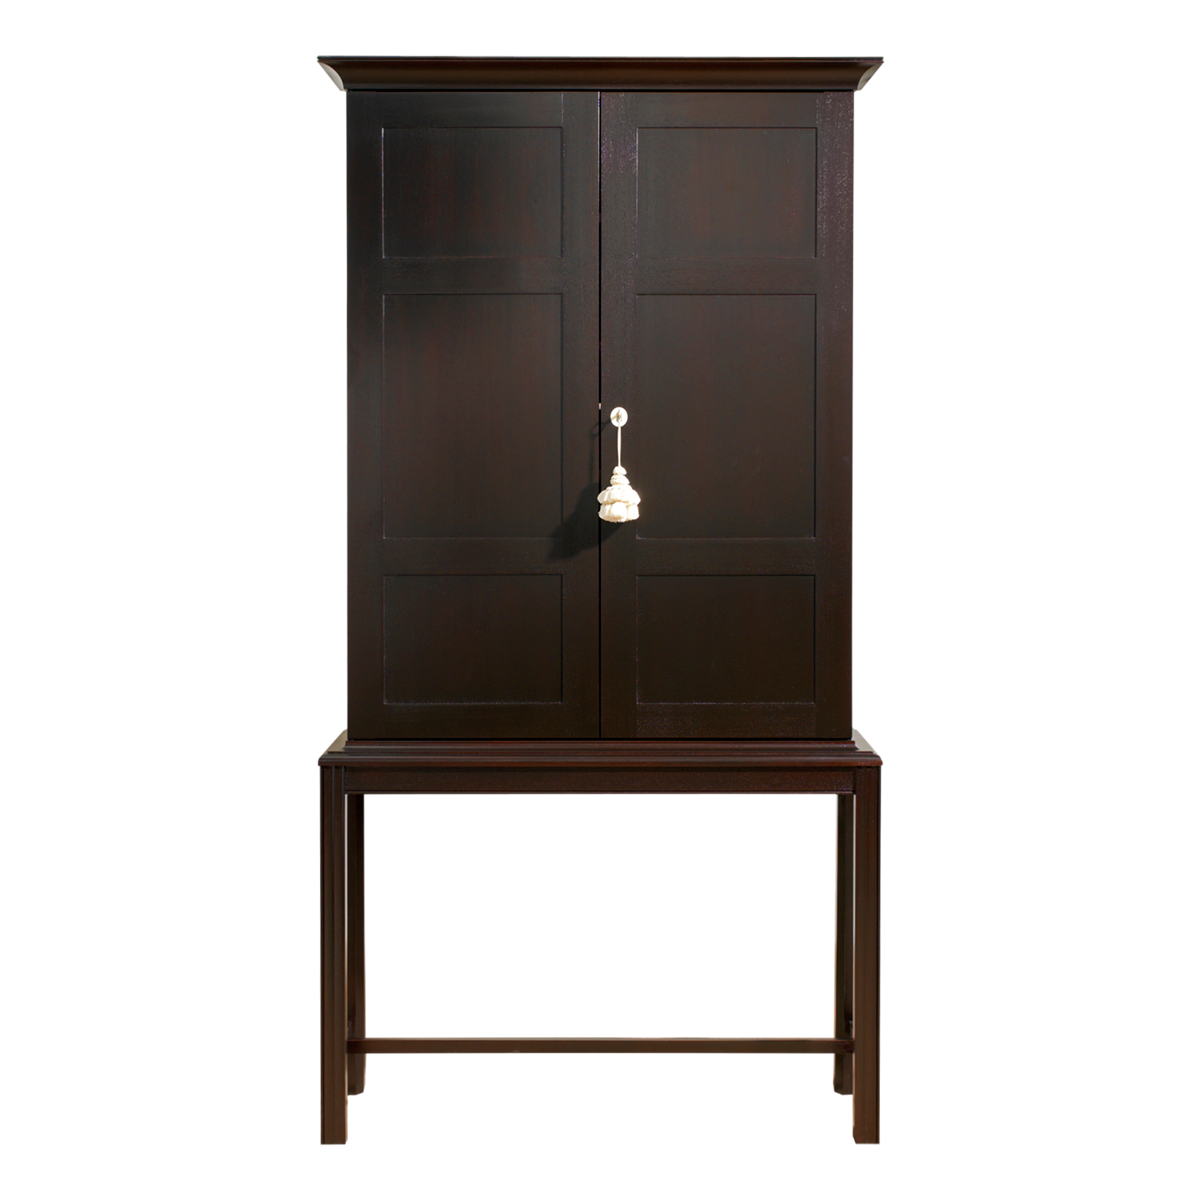 Maxine Snider Inc. Bibliotheque Mahogany Cabinet Front US$5690